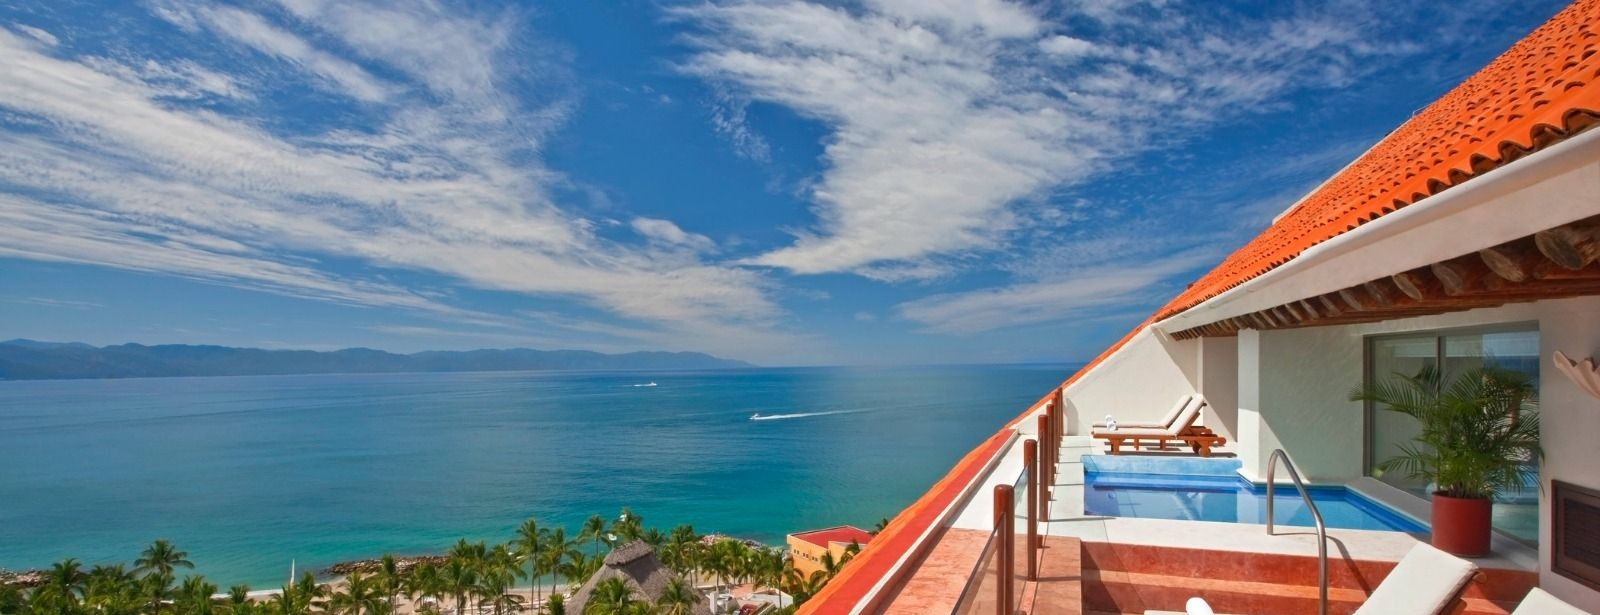 Presidential Suite - The Westin Resort & Spa, Puerto Vallarta